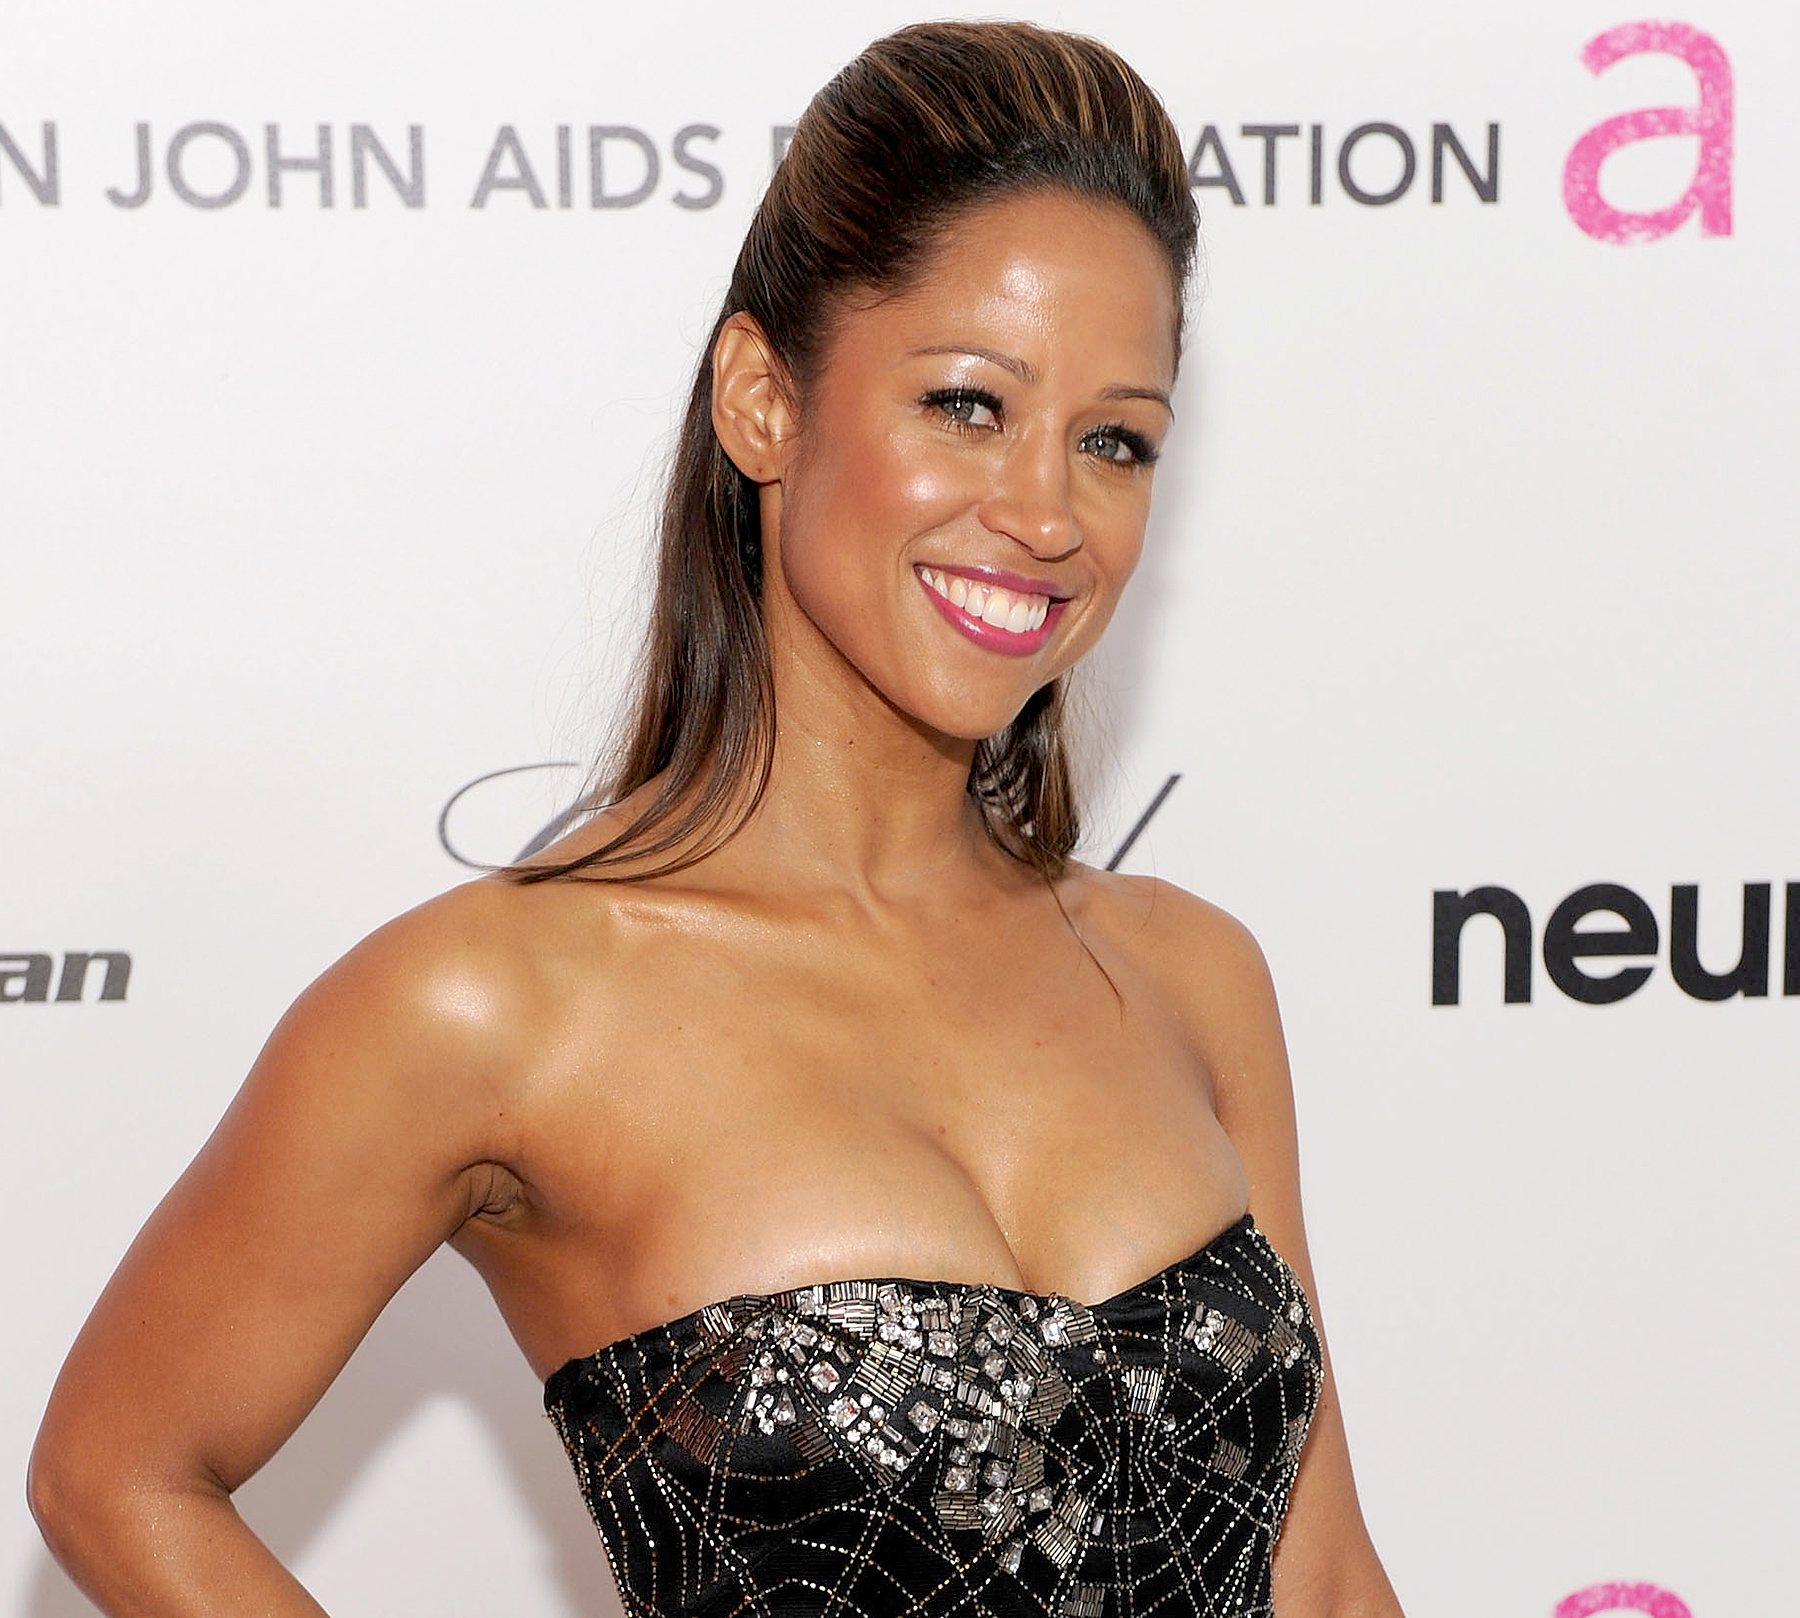 Stacey Dash arrives at the 18th Annual Elton John AIDS Foundation Oscar party held at Pacific Design Center on March 7, 2010 in West Hollywood, California.